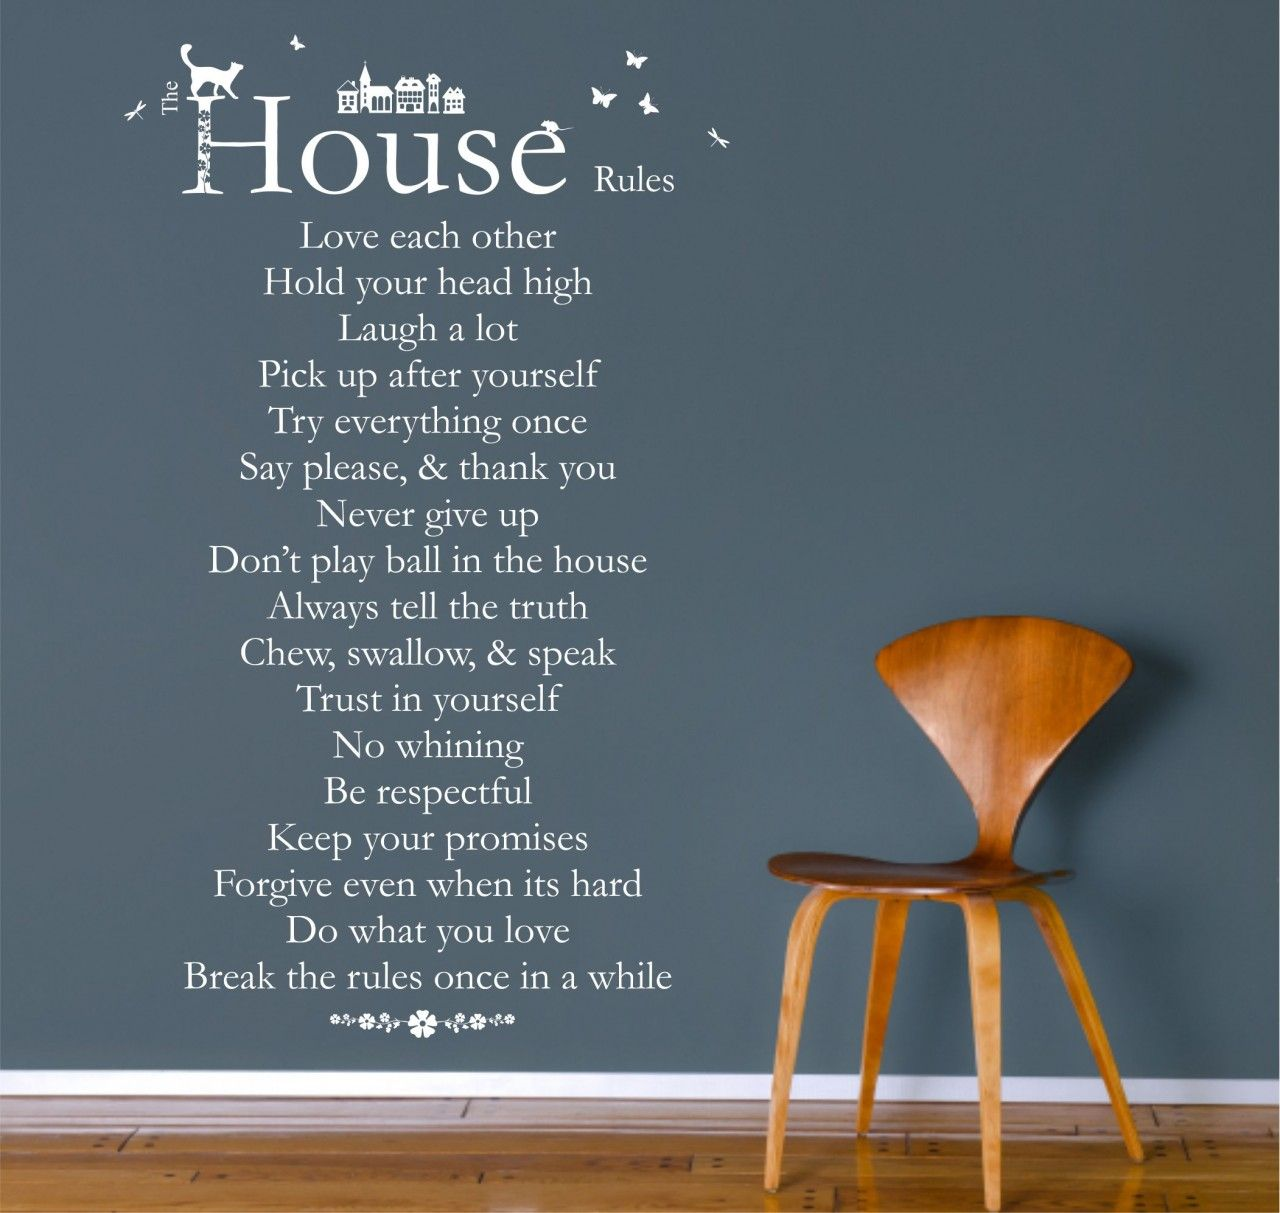 Image Déco Maison Pinterest Rules Quotes House Rules - House rules wall decals